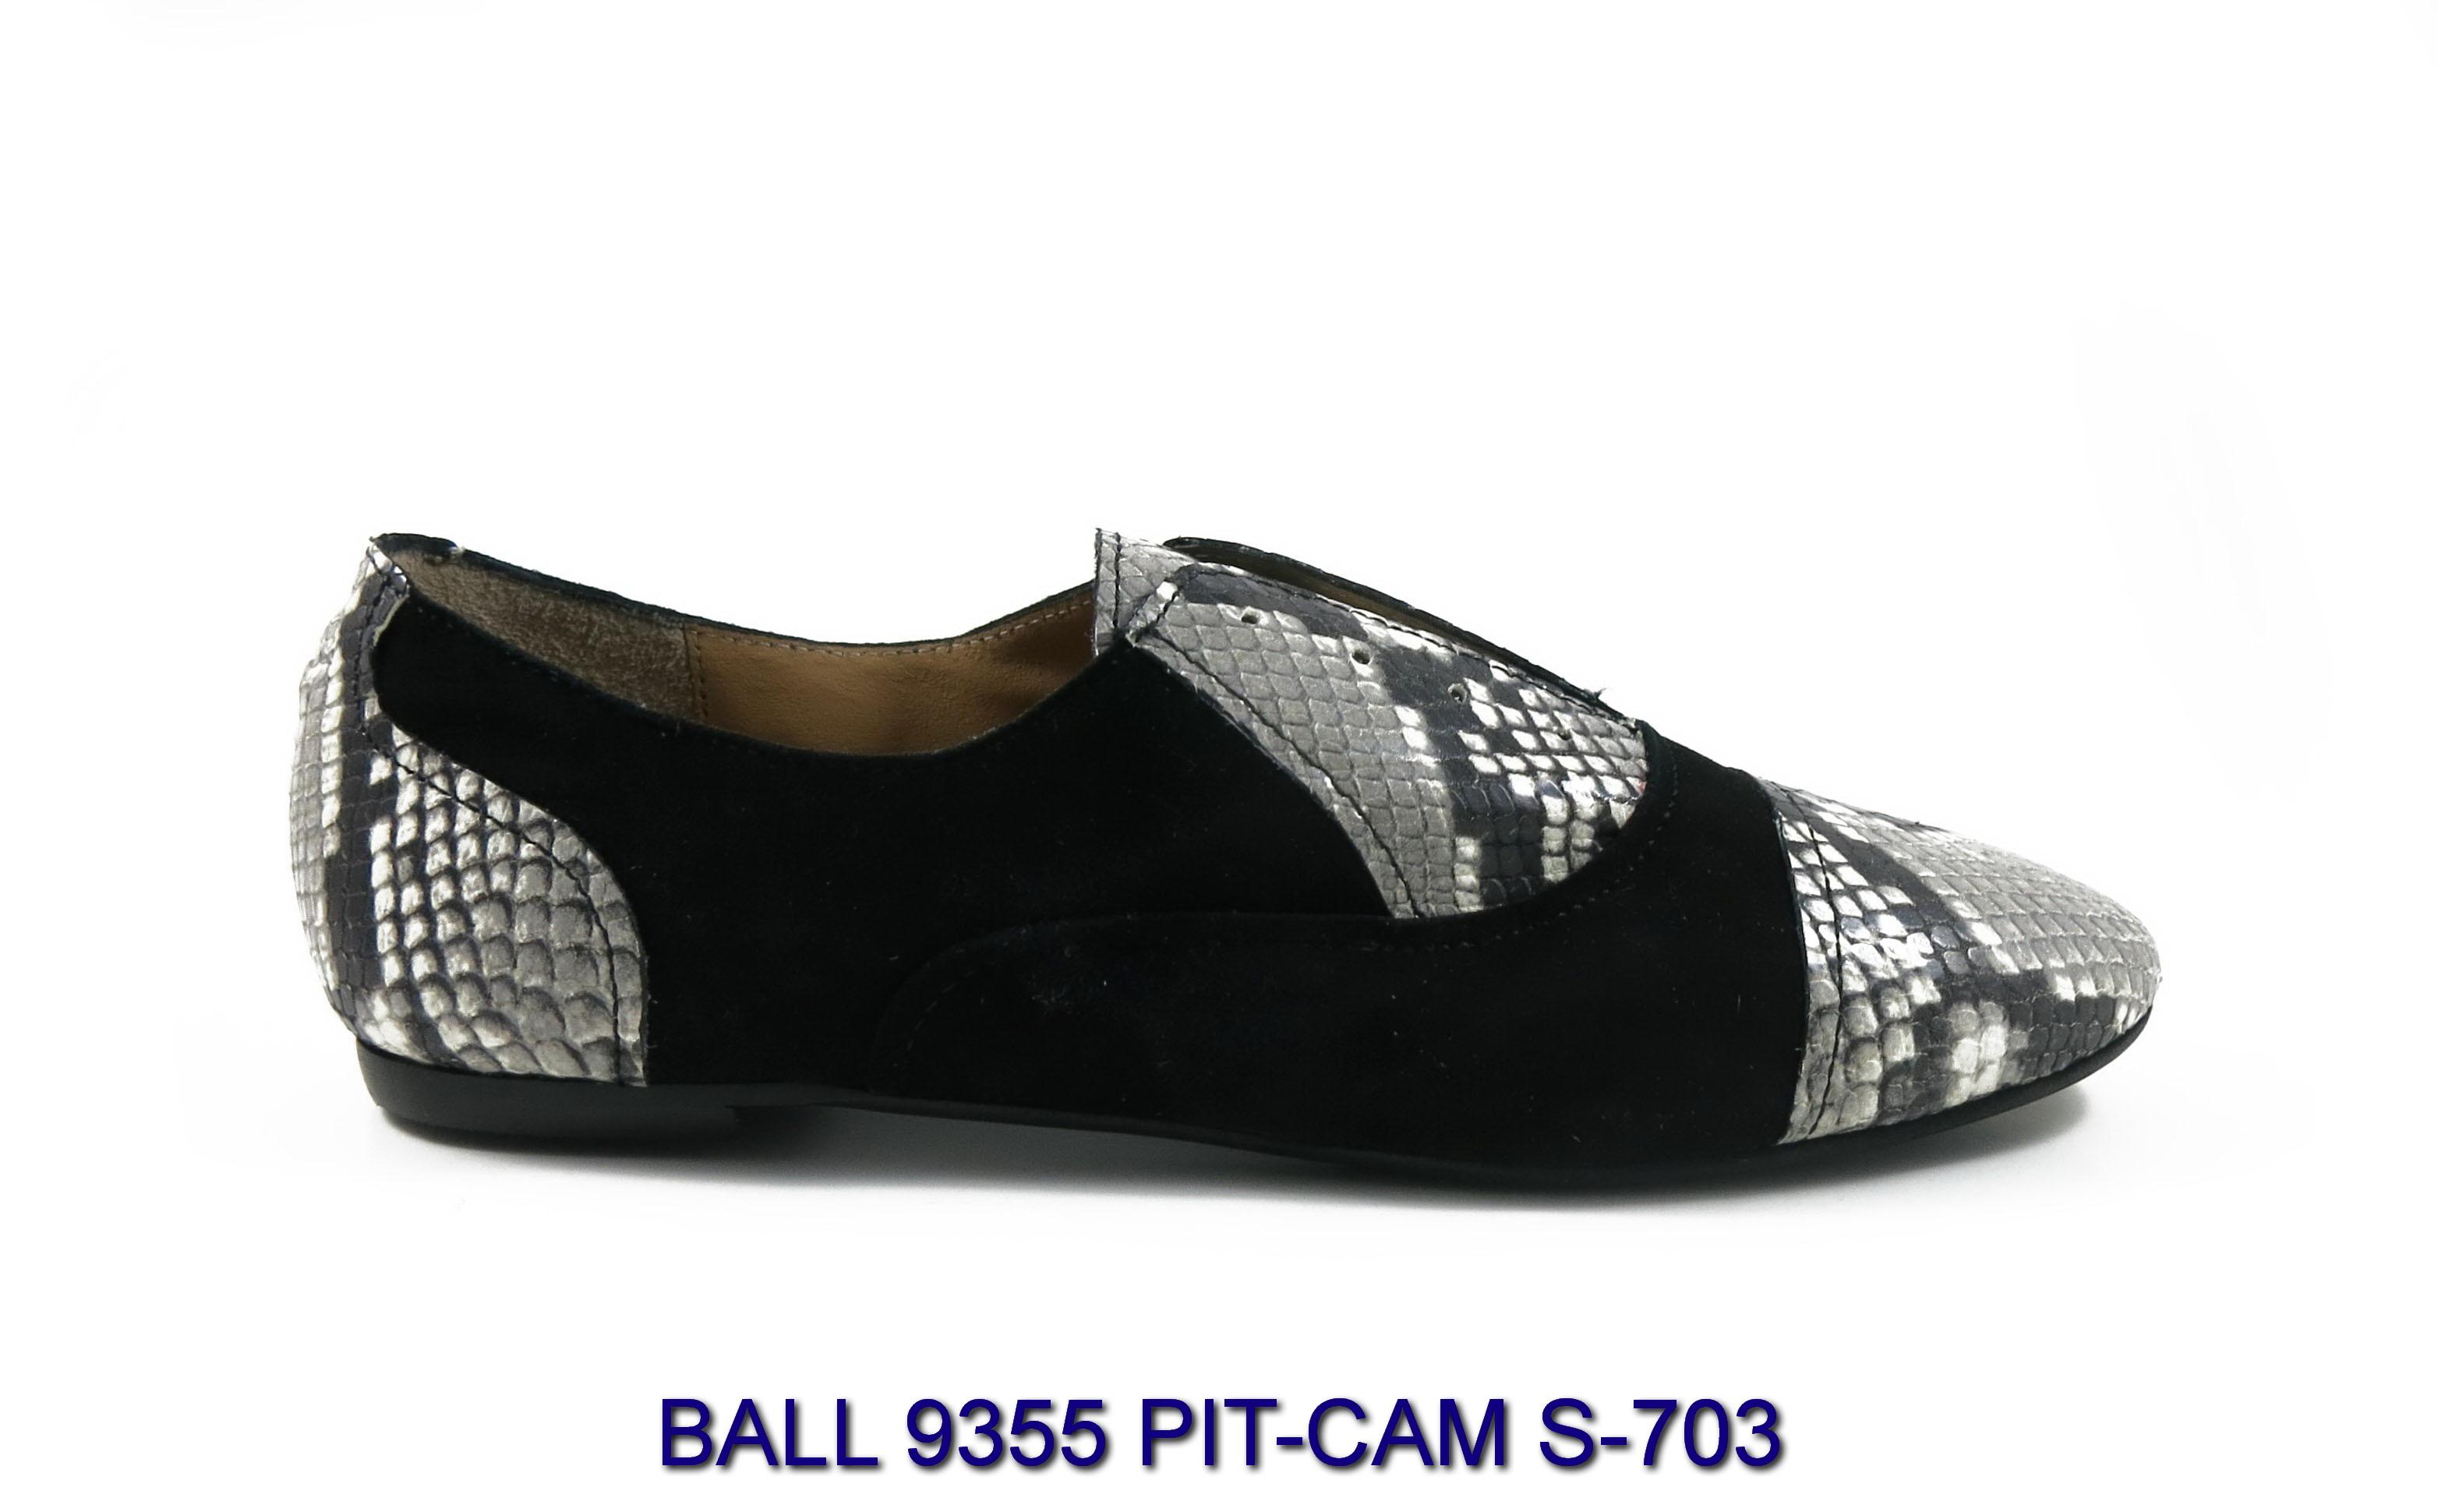 BALL-9355-PIT-CAM-S-703